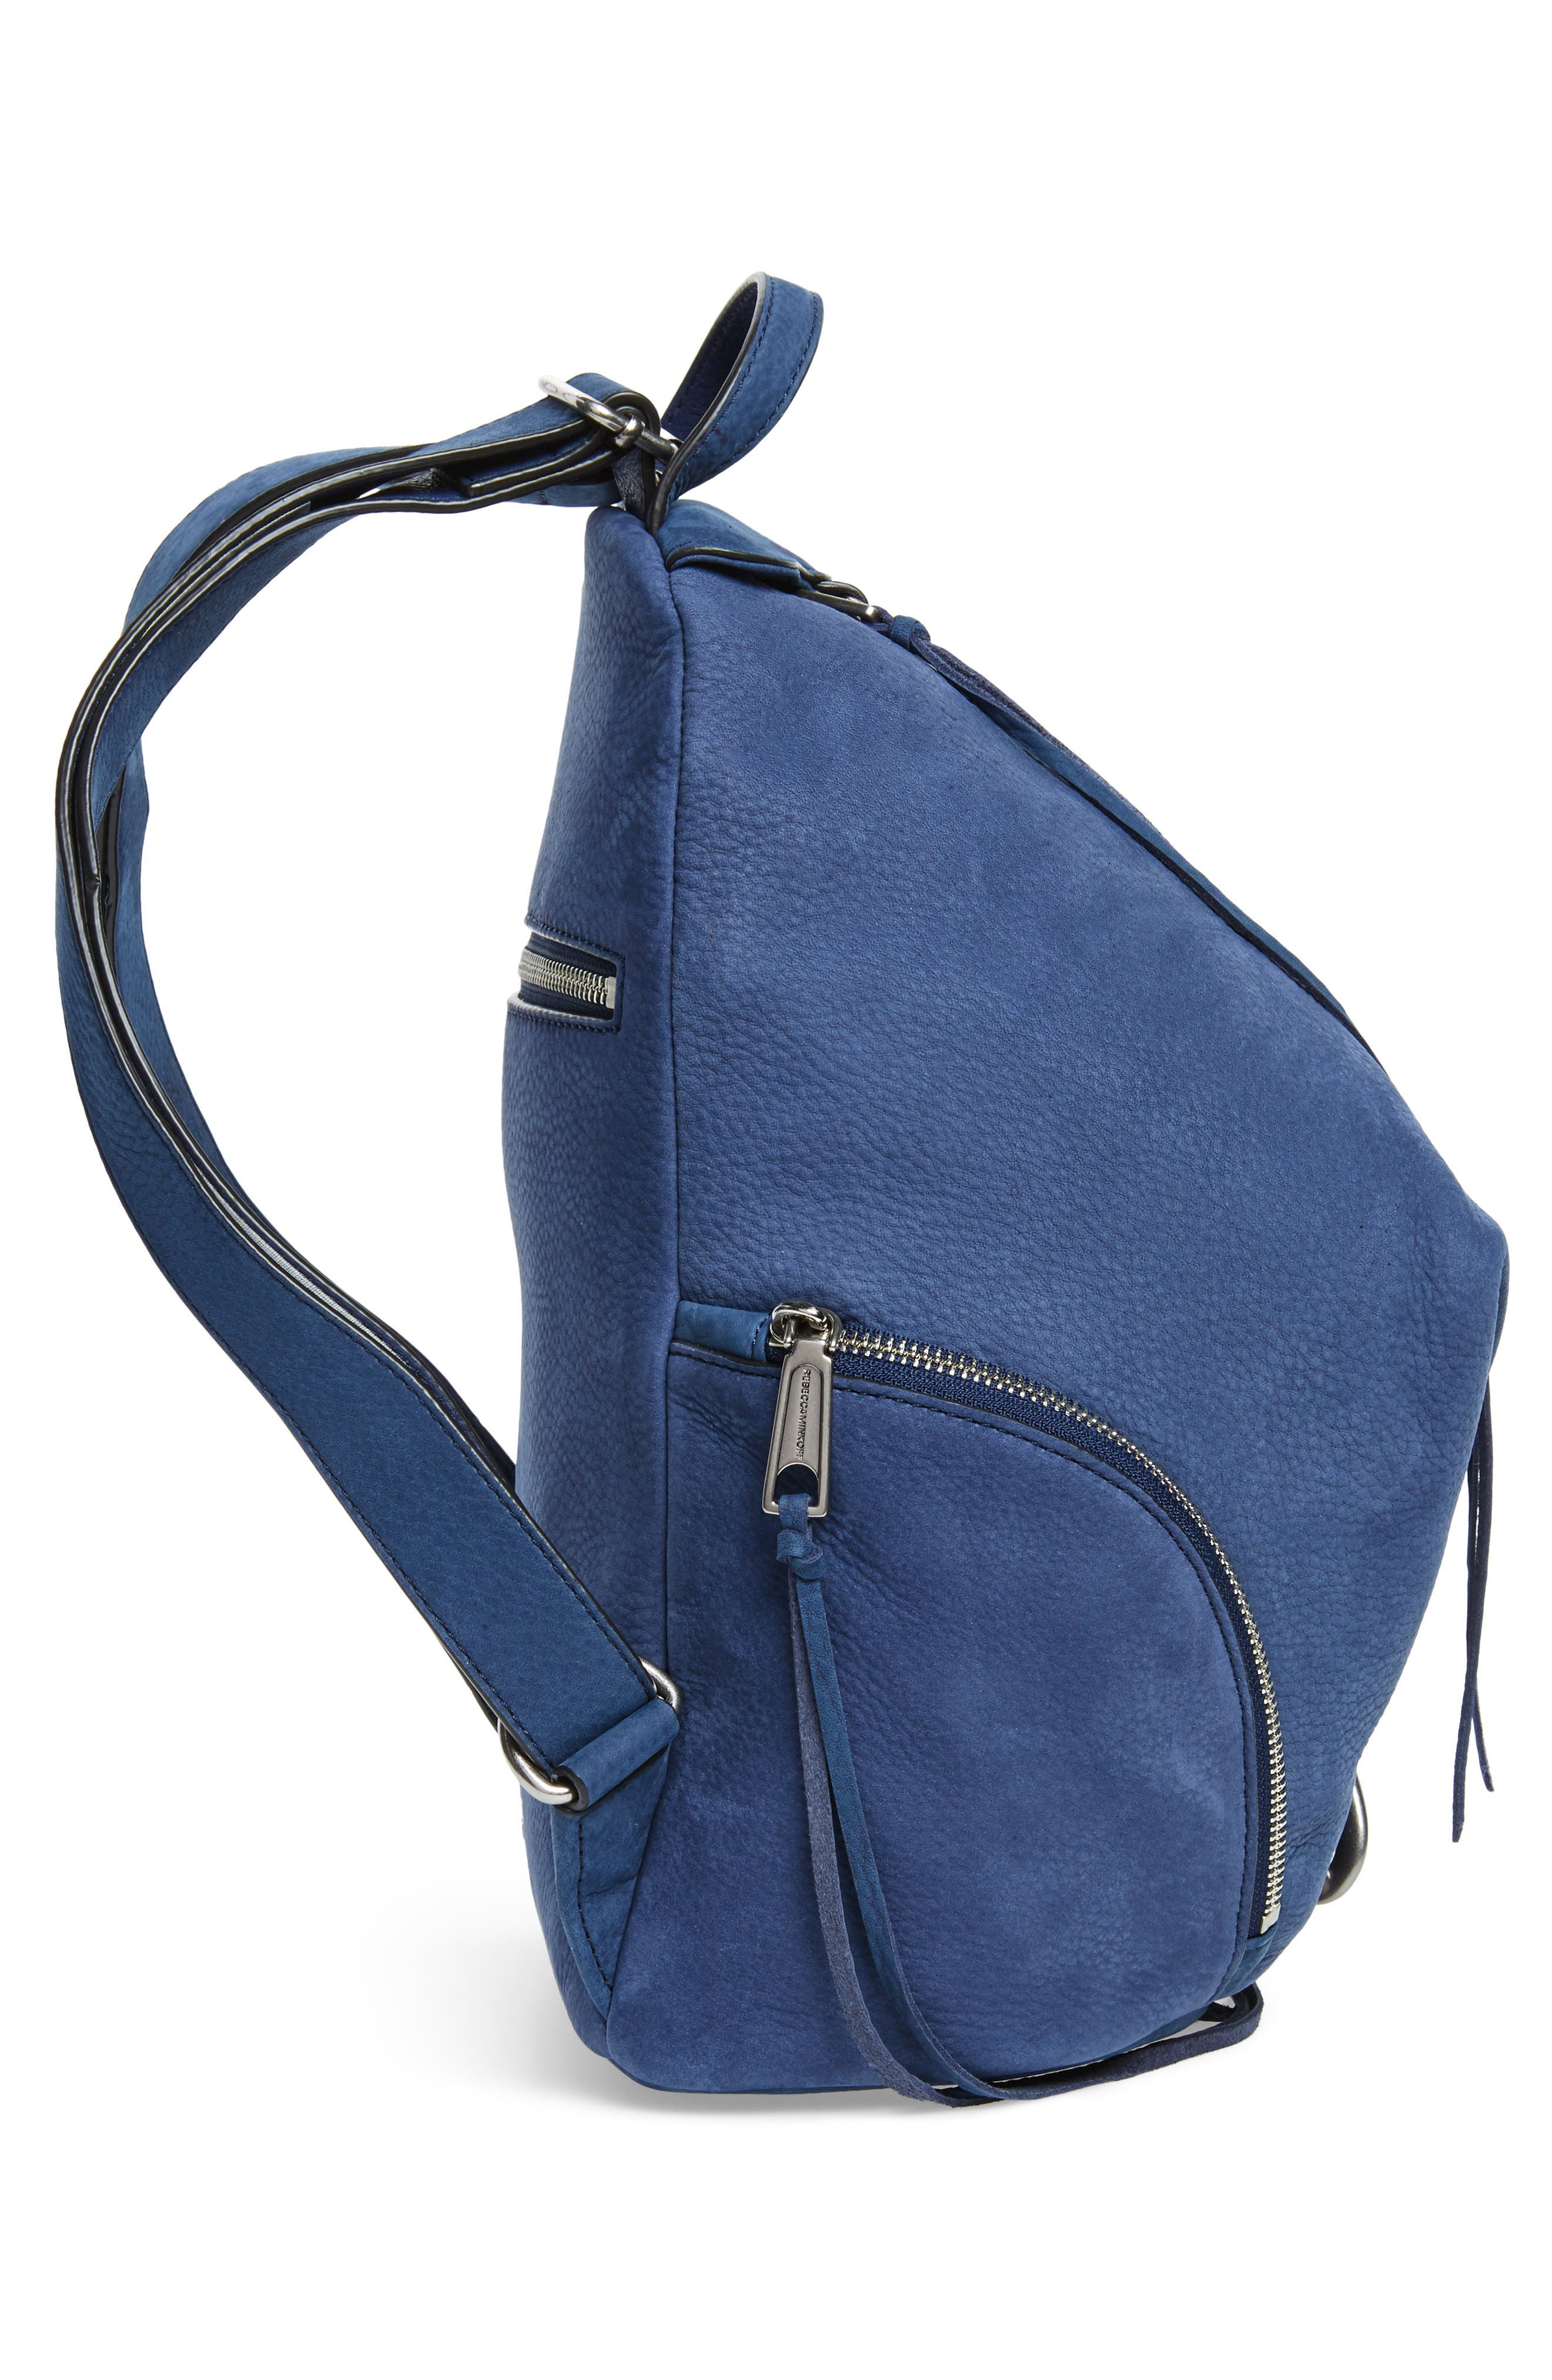 Julian Convertible Nubuck Leather Backpack,                             Alternate thumbnail 5, color,                             483